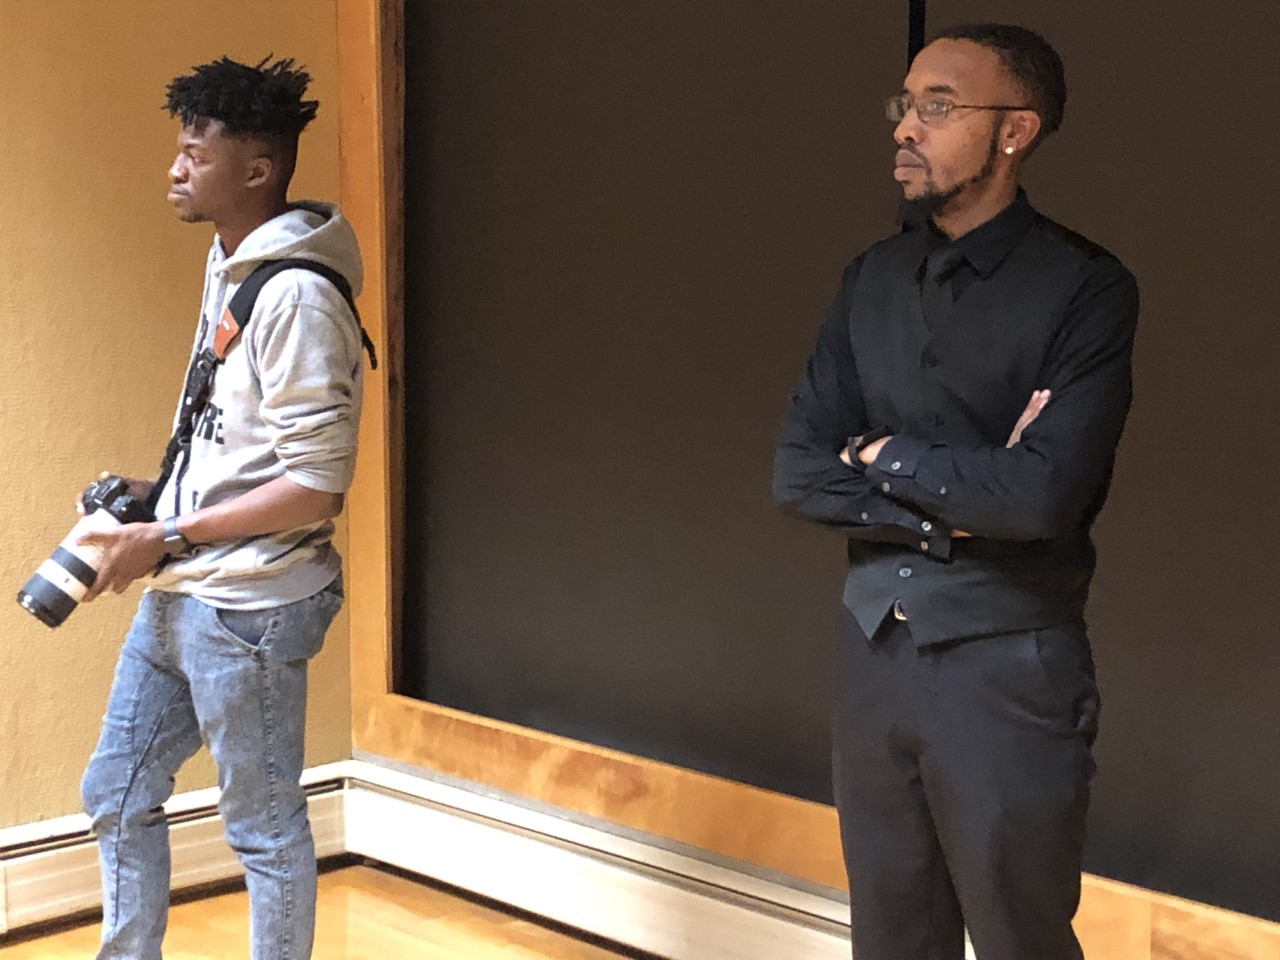 August Phlieger, AP Productions, produced the film of three FHSU students who've struggled with mental health issues, including Demetrius Chance (at right).